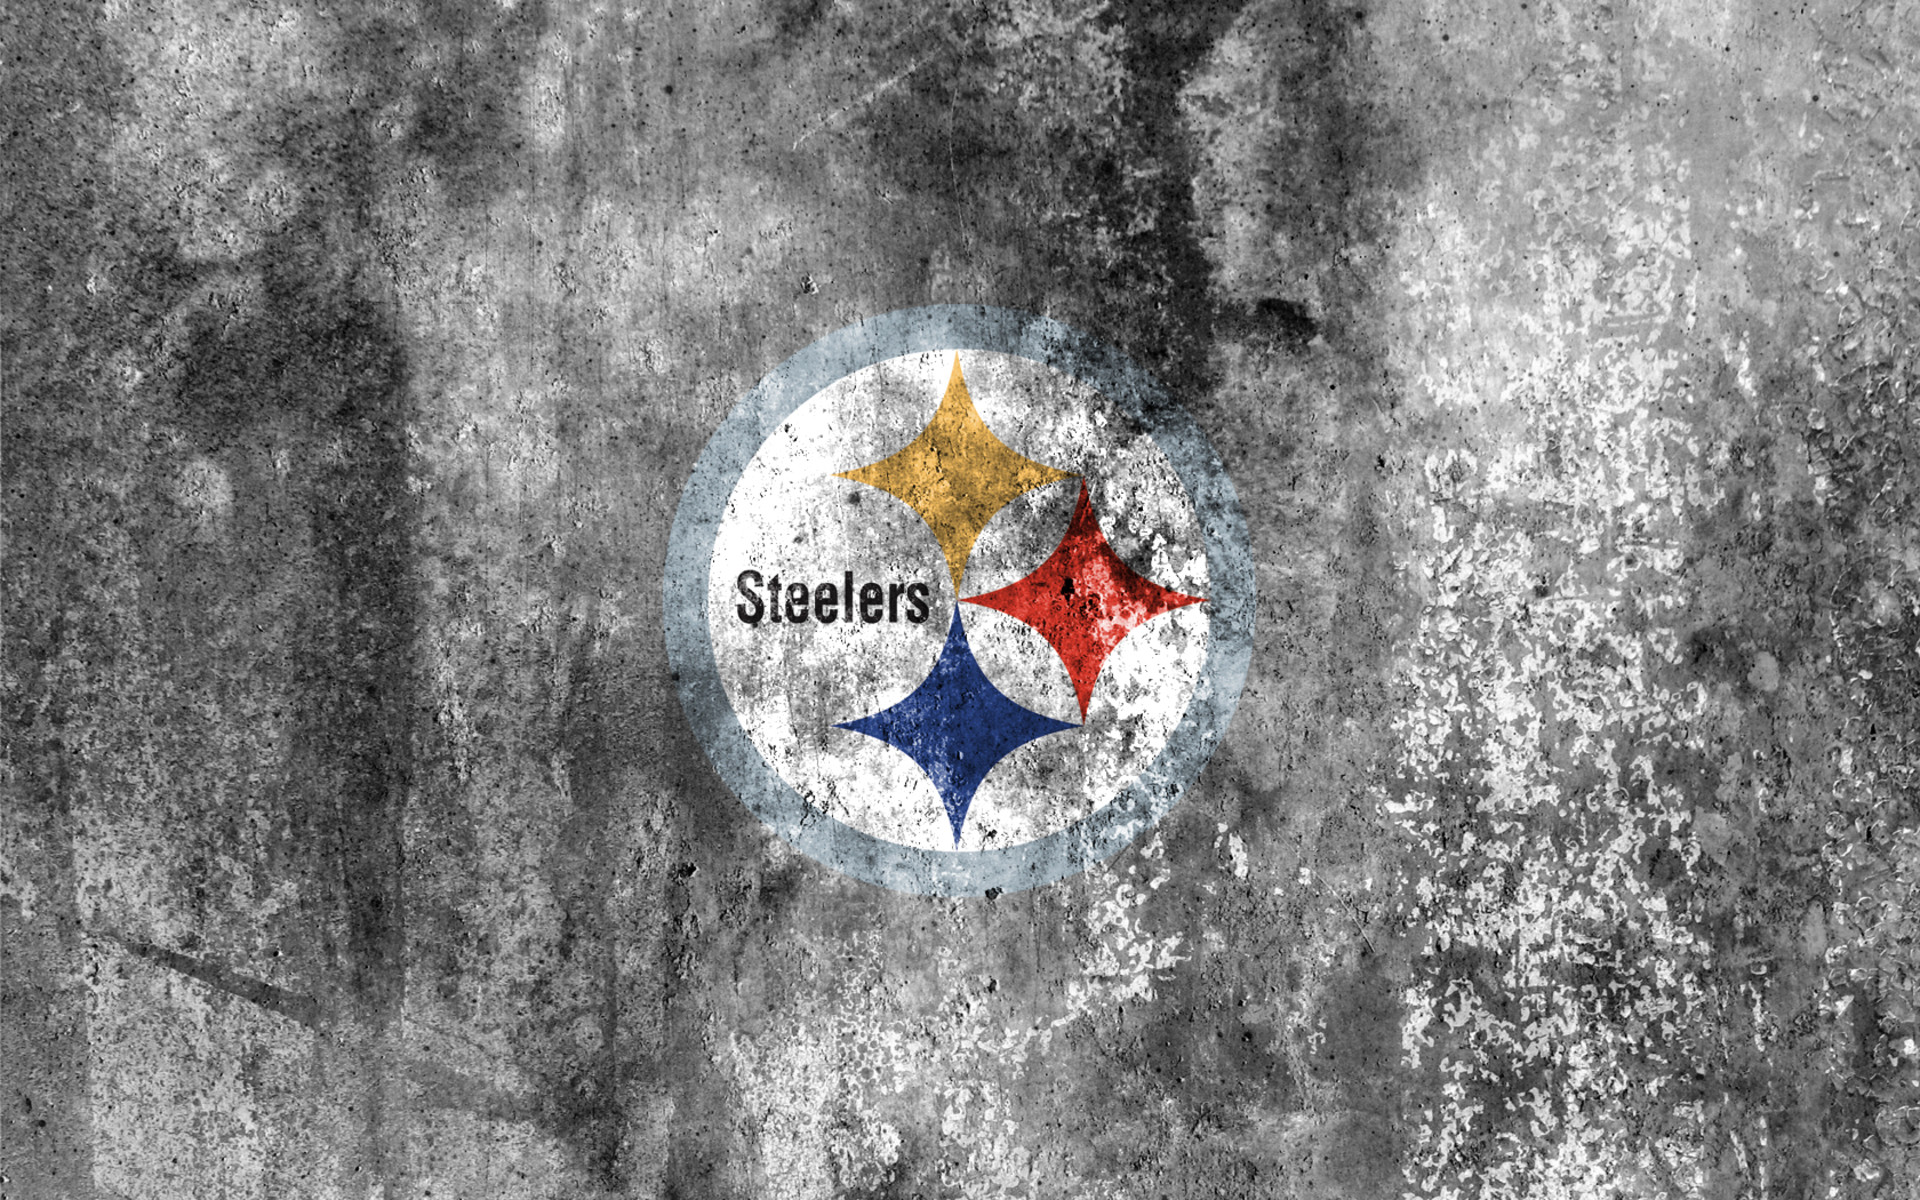 Steelers Wallpapers | HD Wallpapers Early